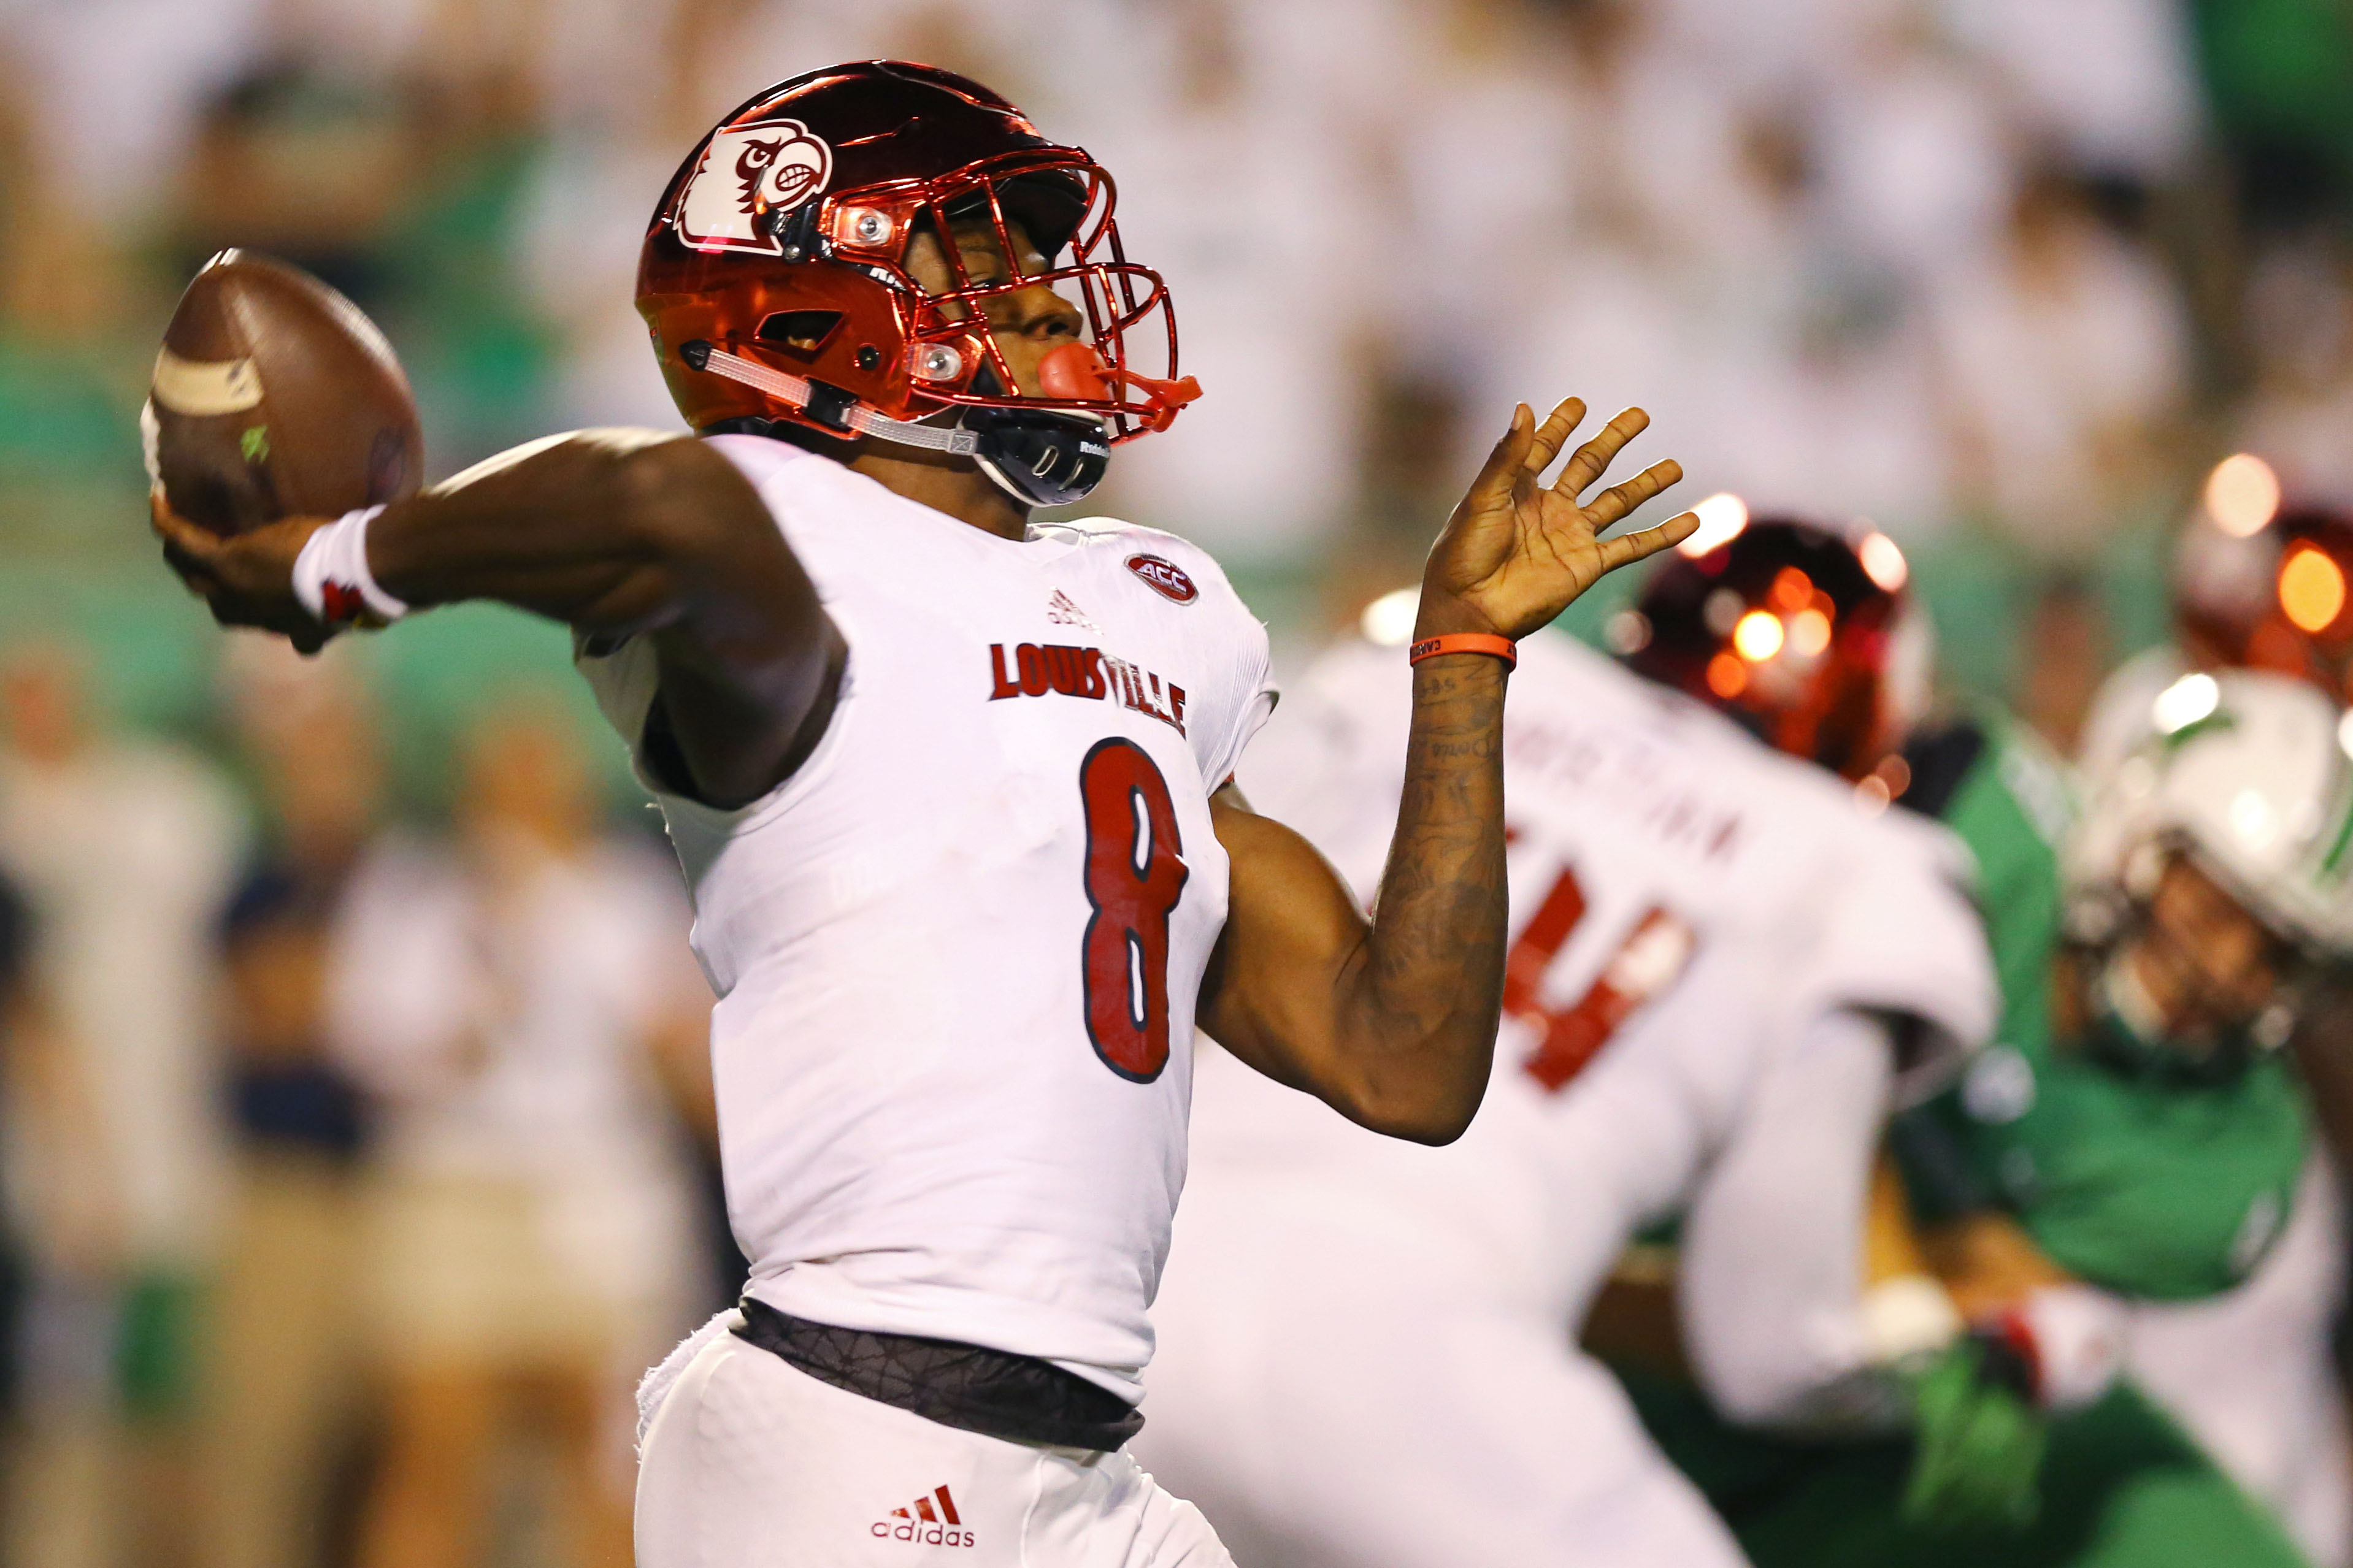 Sep 24, 2016; Huntington, WV, USA; Louisville Cardinals quarterback Lamar Jackson (8) throws a pass for a touchdown to wide receiver James Quick (not pictured) against the Marshall Thundering Herd in the first half at Joan C. Edwards Stadium. Mandatory Credit: Aaron Doster-USA TODAY Sports